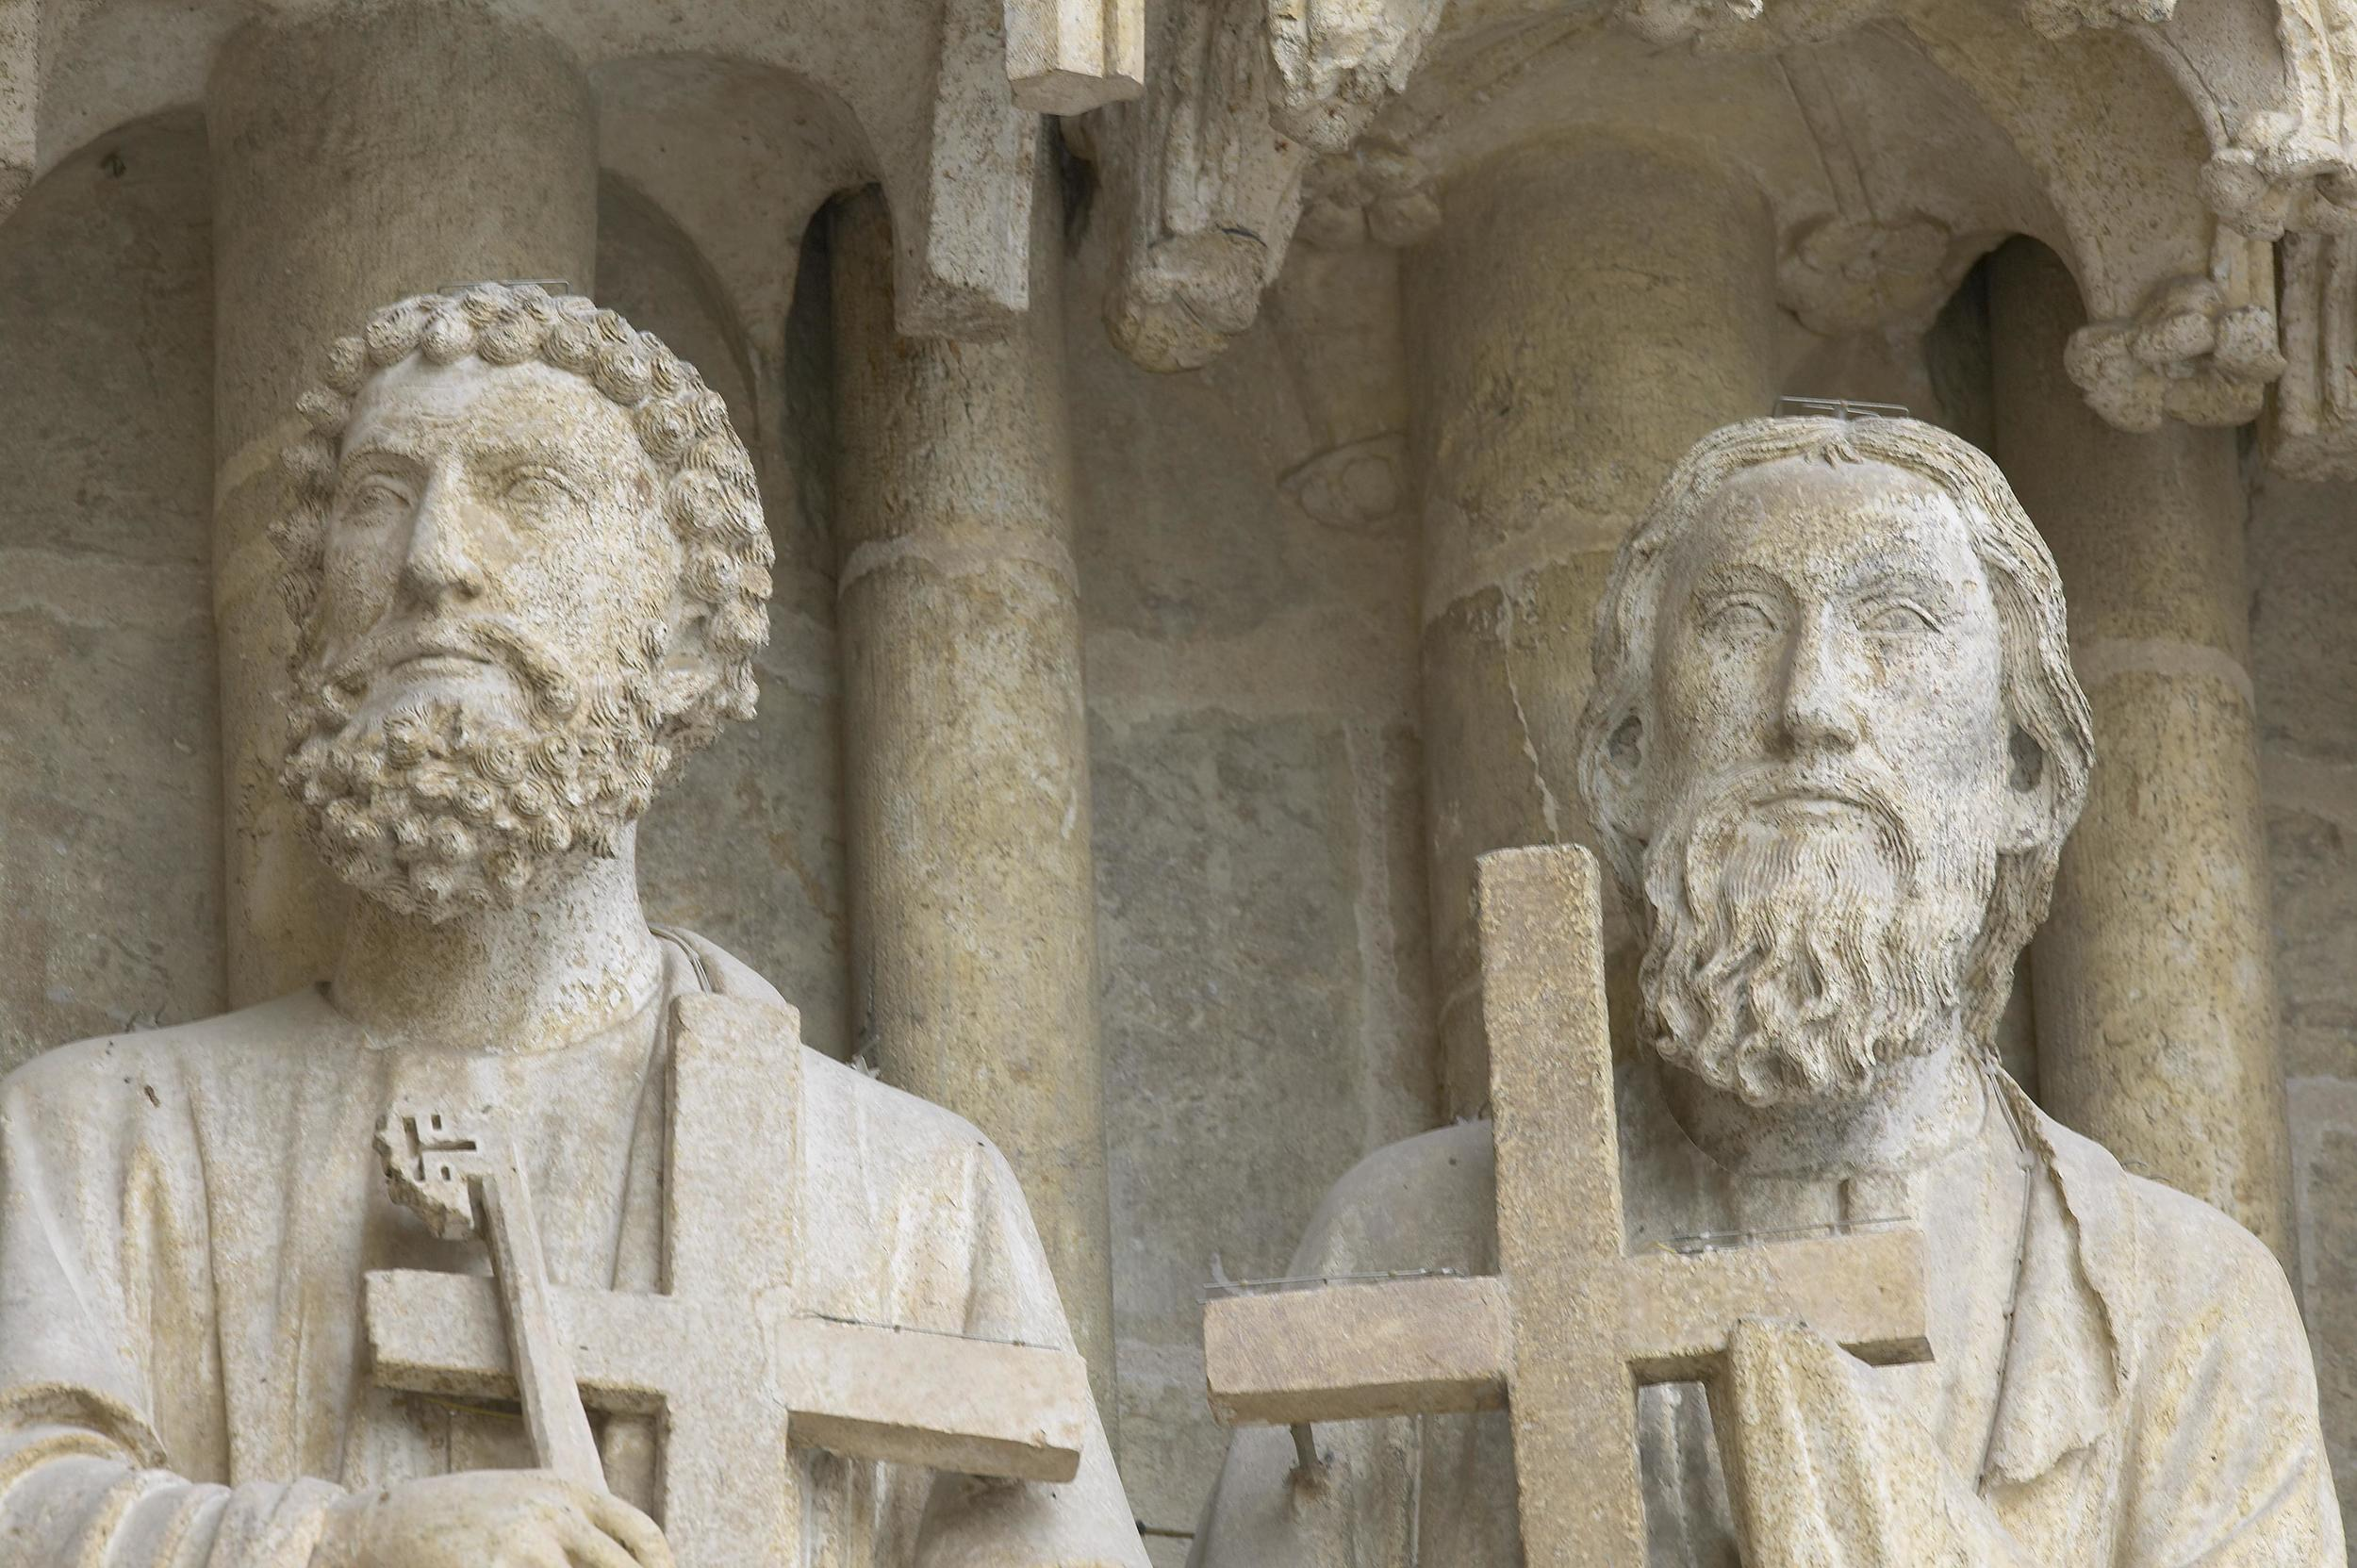 Jamb Figures: Apostles Peter and Andrew